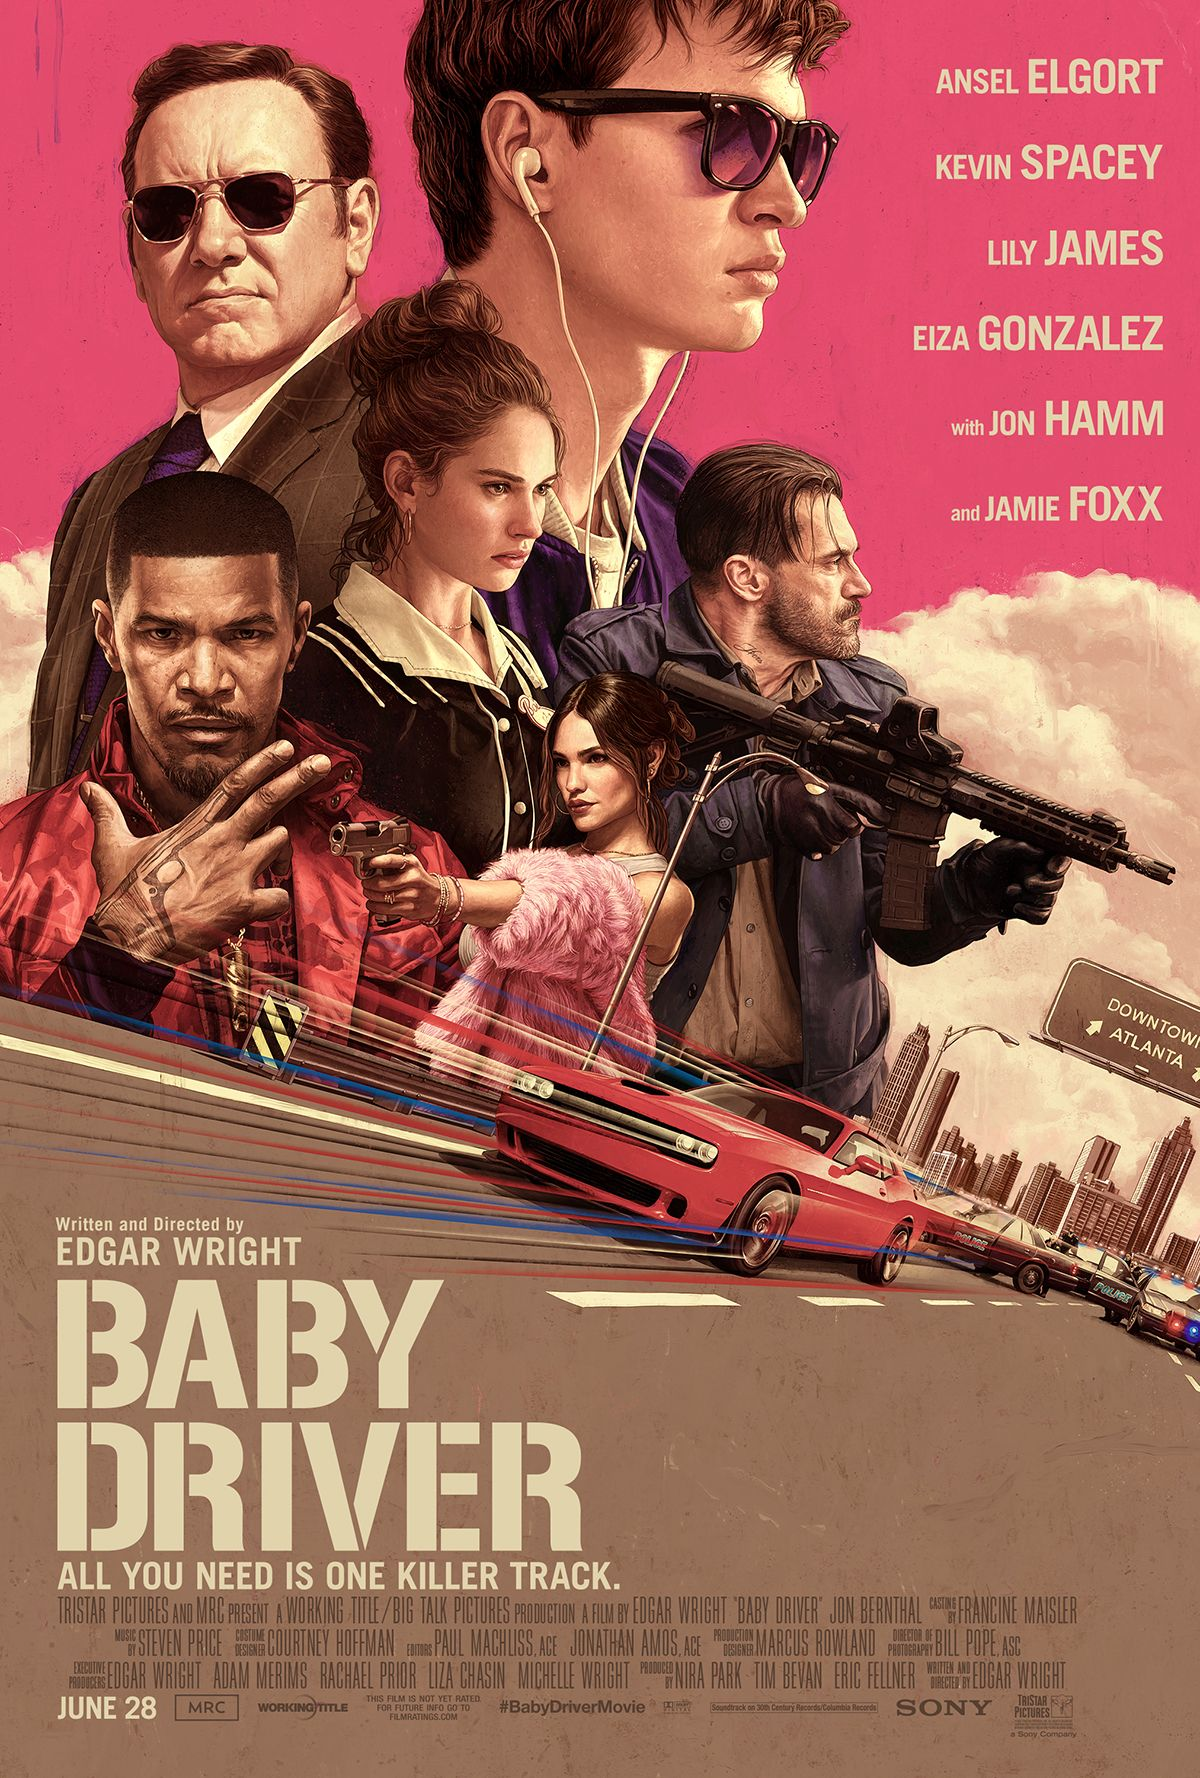 100 Movie Challenge 2017, 87/ 100: Baby Driver, Rating: 5/ 5